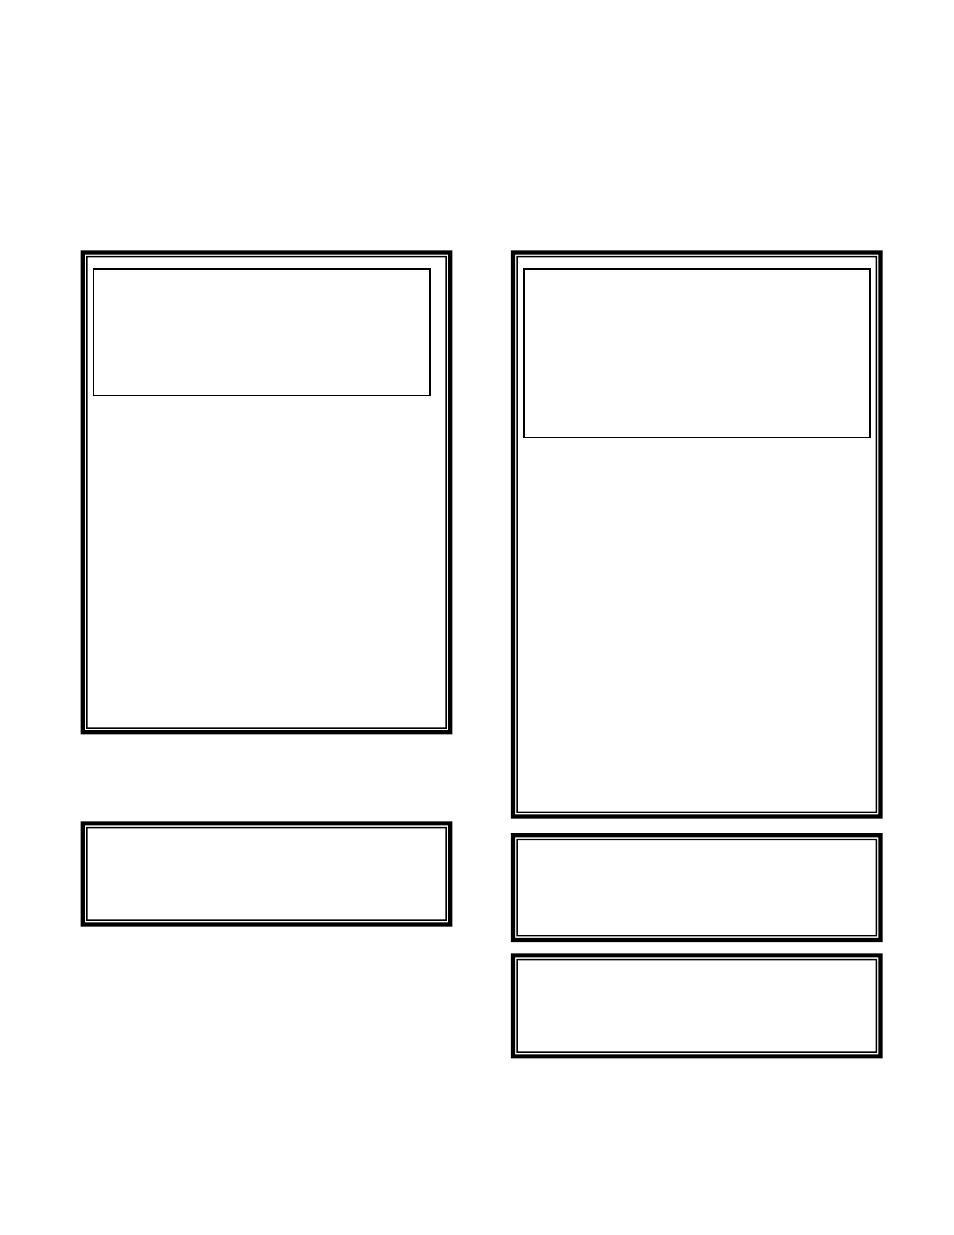 Dexter Dryers Manuals Dryer Motor Wiring Diagram F1695rdh Appliances Washer Array Laundry T 30 On Premise User Manual 22 Pages Rh Manualsdir